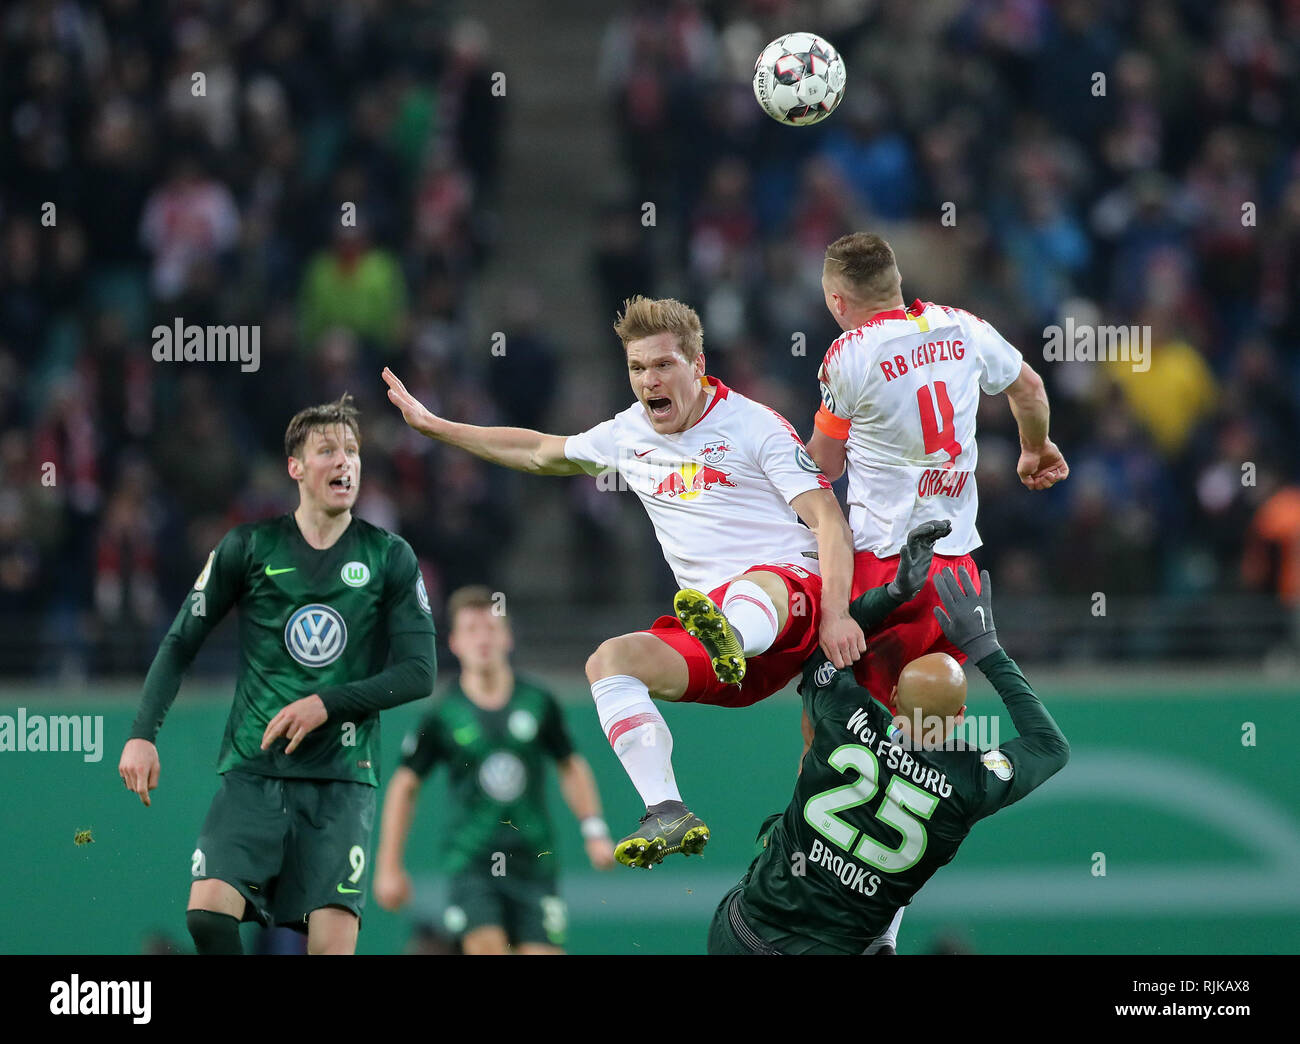 Leipzig, Germany. 06th Feb, 2019. Soccer: DFB Cup, Round of